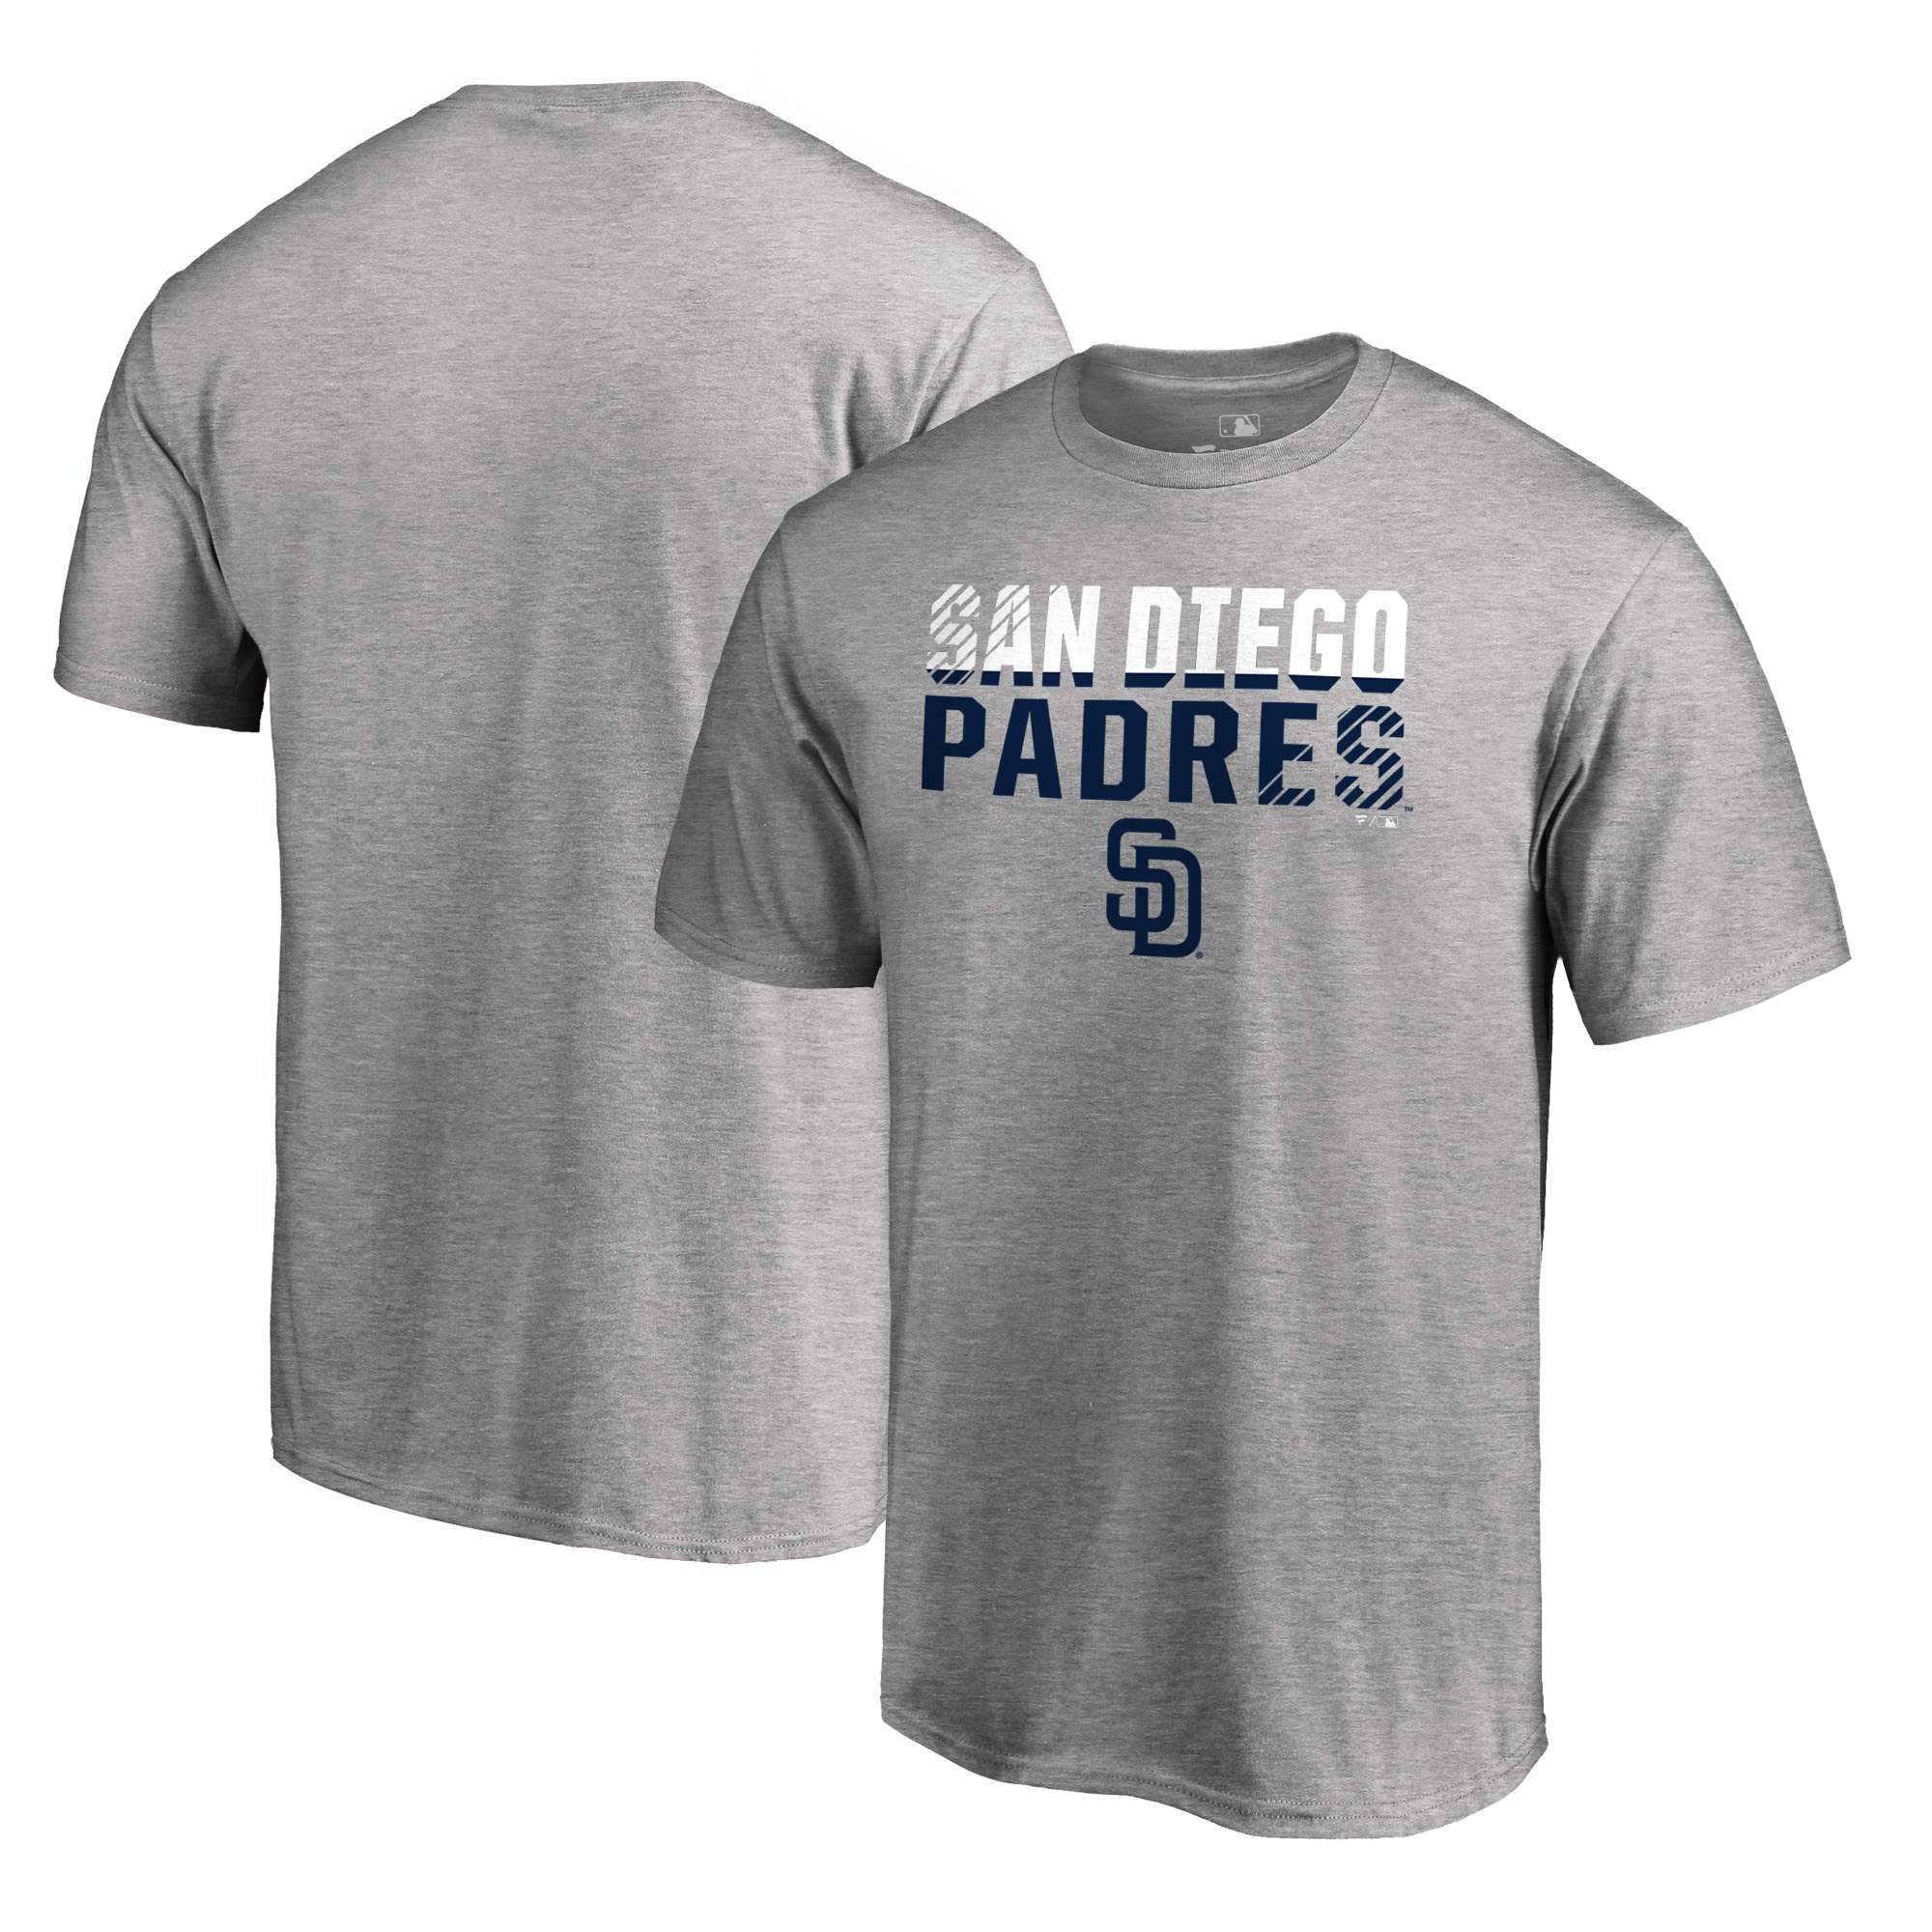 San Diego Padres Fanatics Branded Fade Out T-Shirt - Ash